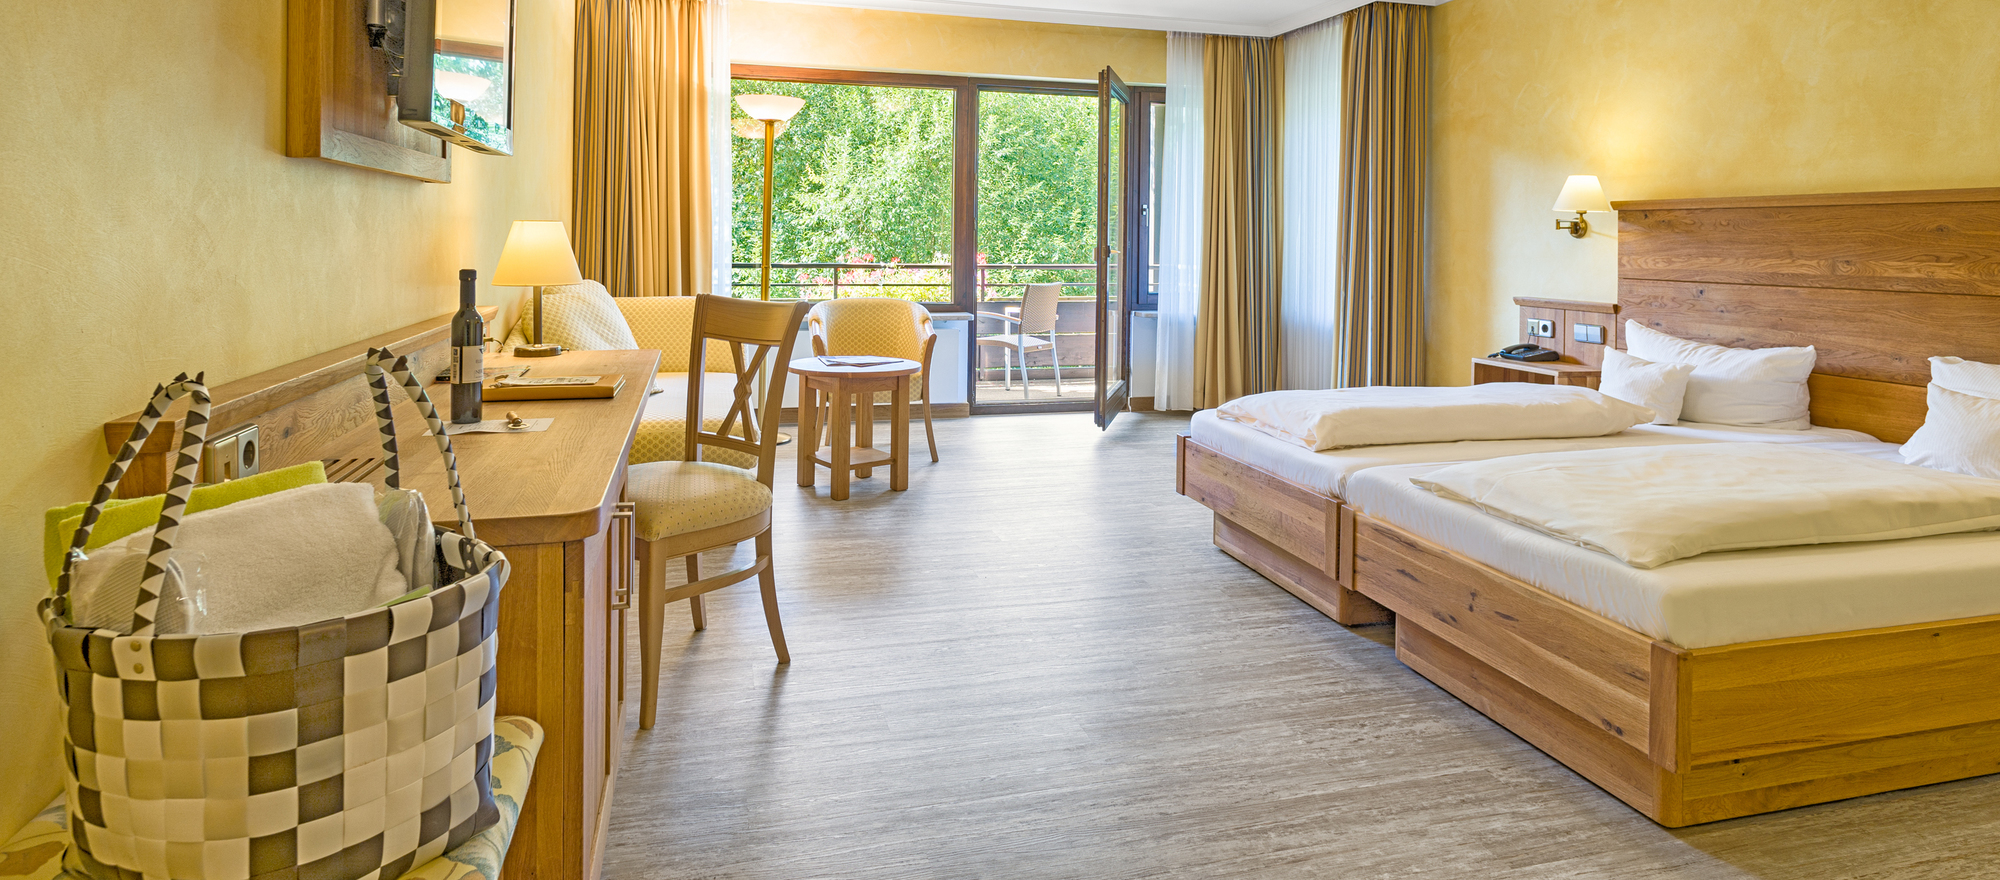 Comfort double room with south-facing balcony invite to relax at the Ringhotel Moenchs Waldhotel, 4-star hotel  in Unterreichenbach